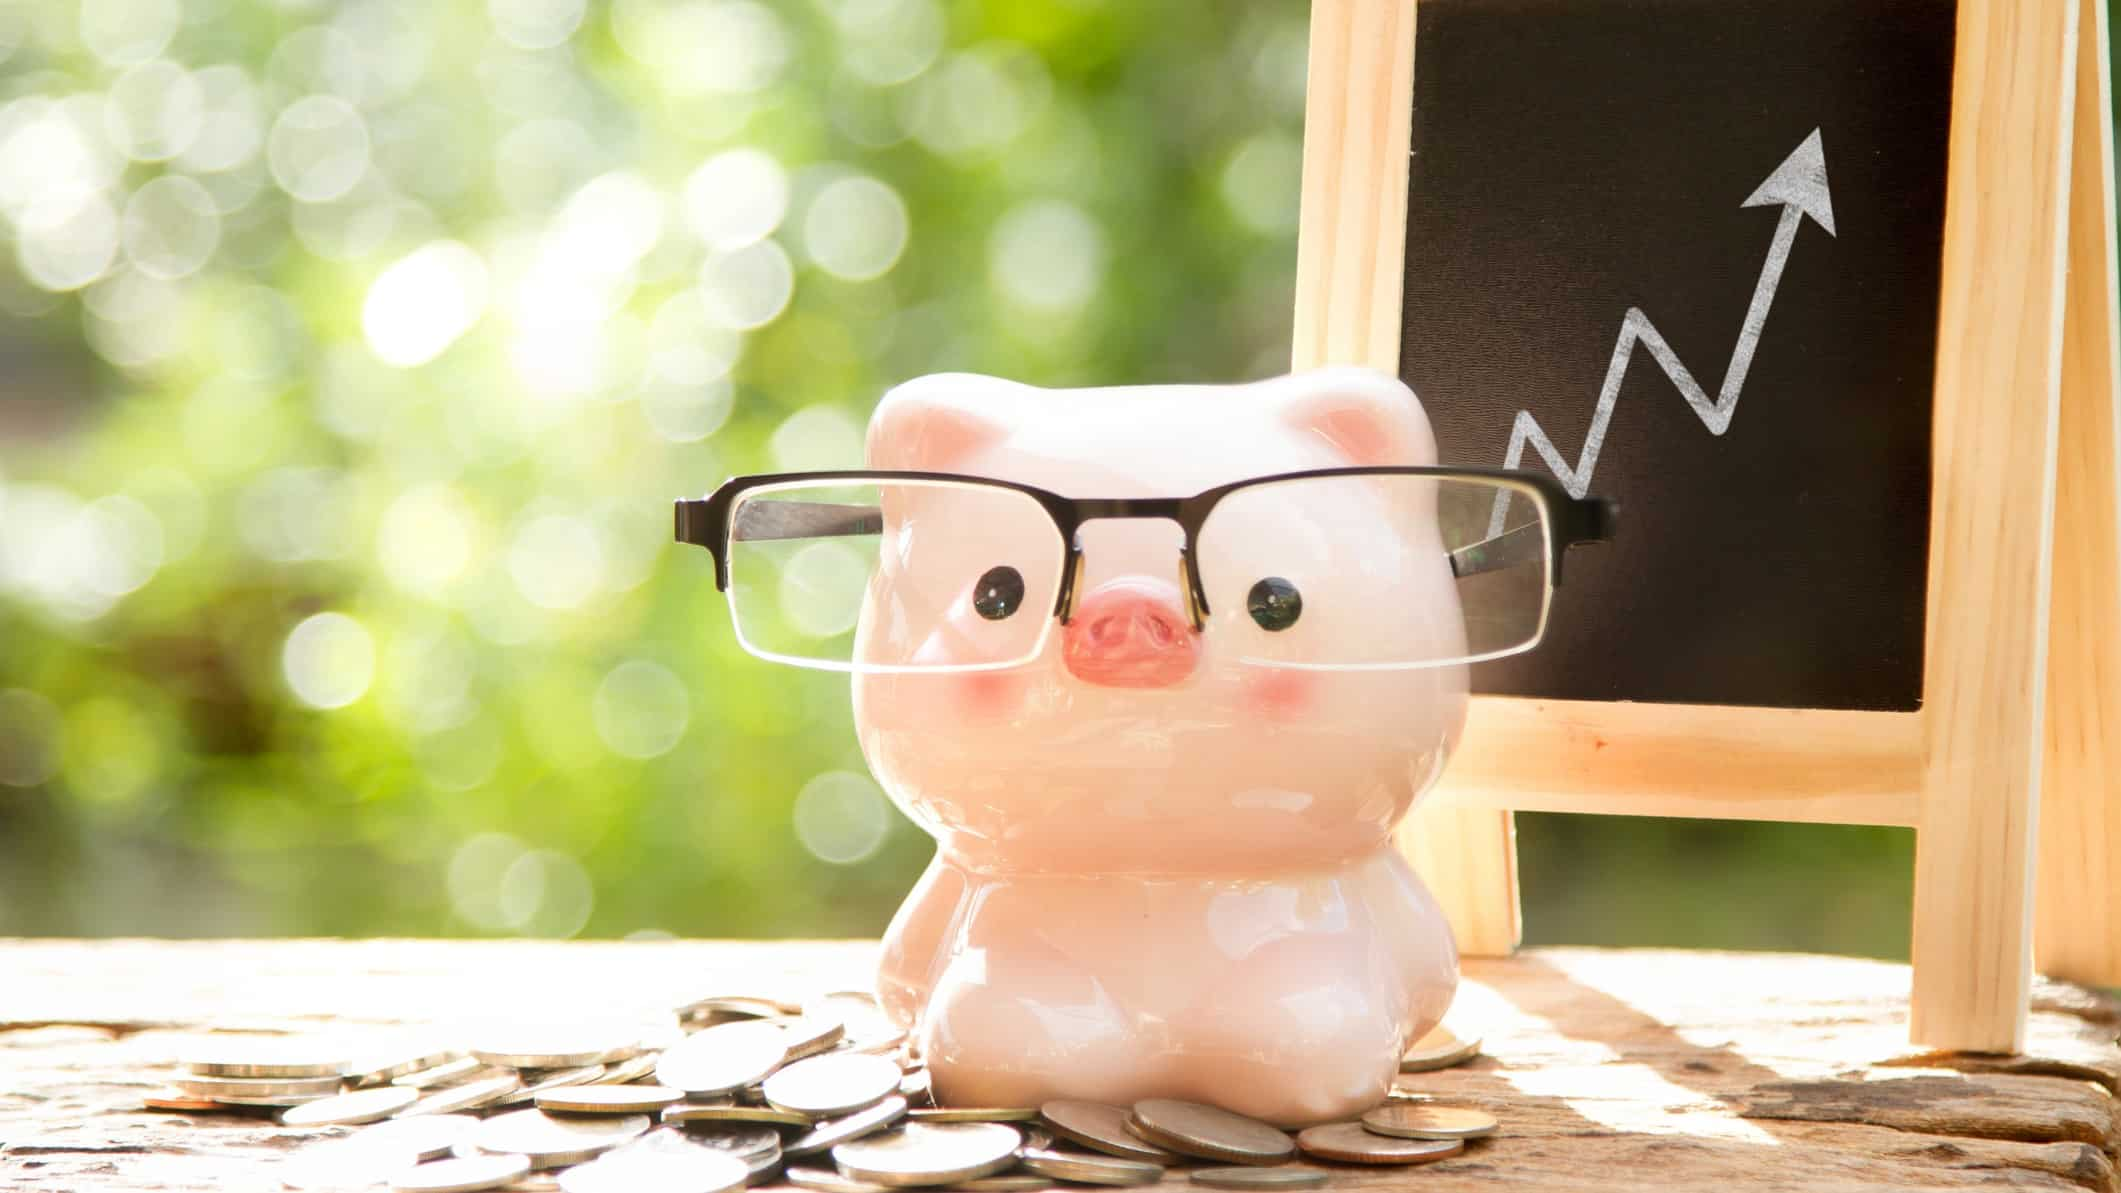 Piggy bank in front of blackboard chart with rising arrow